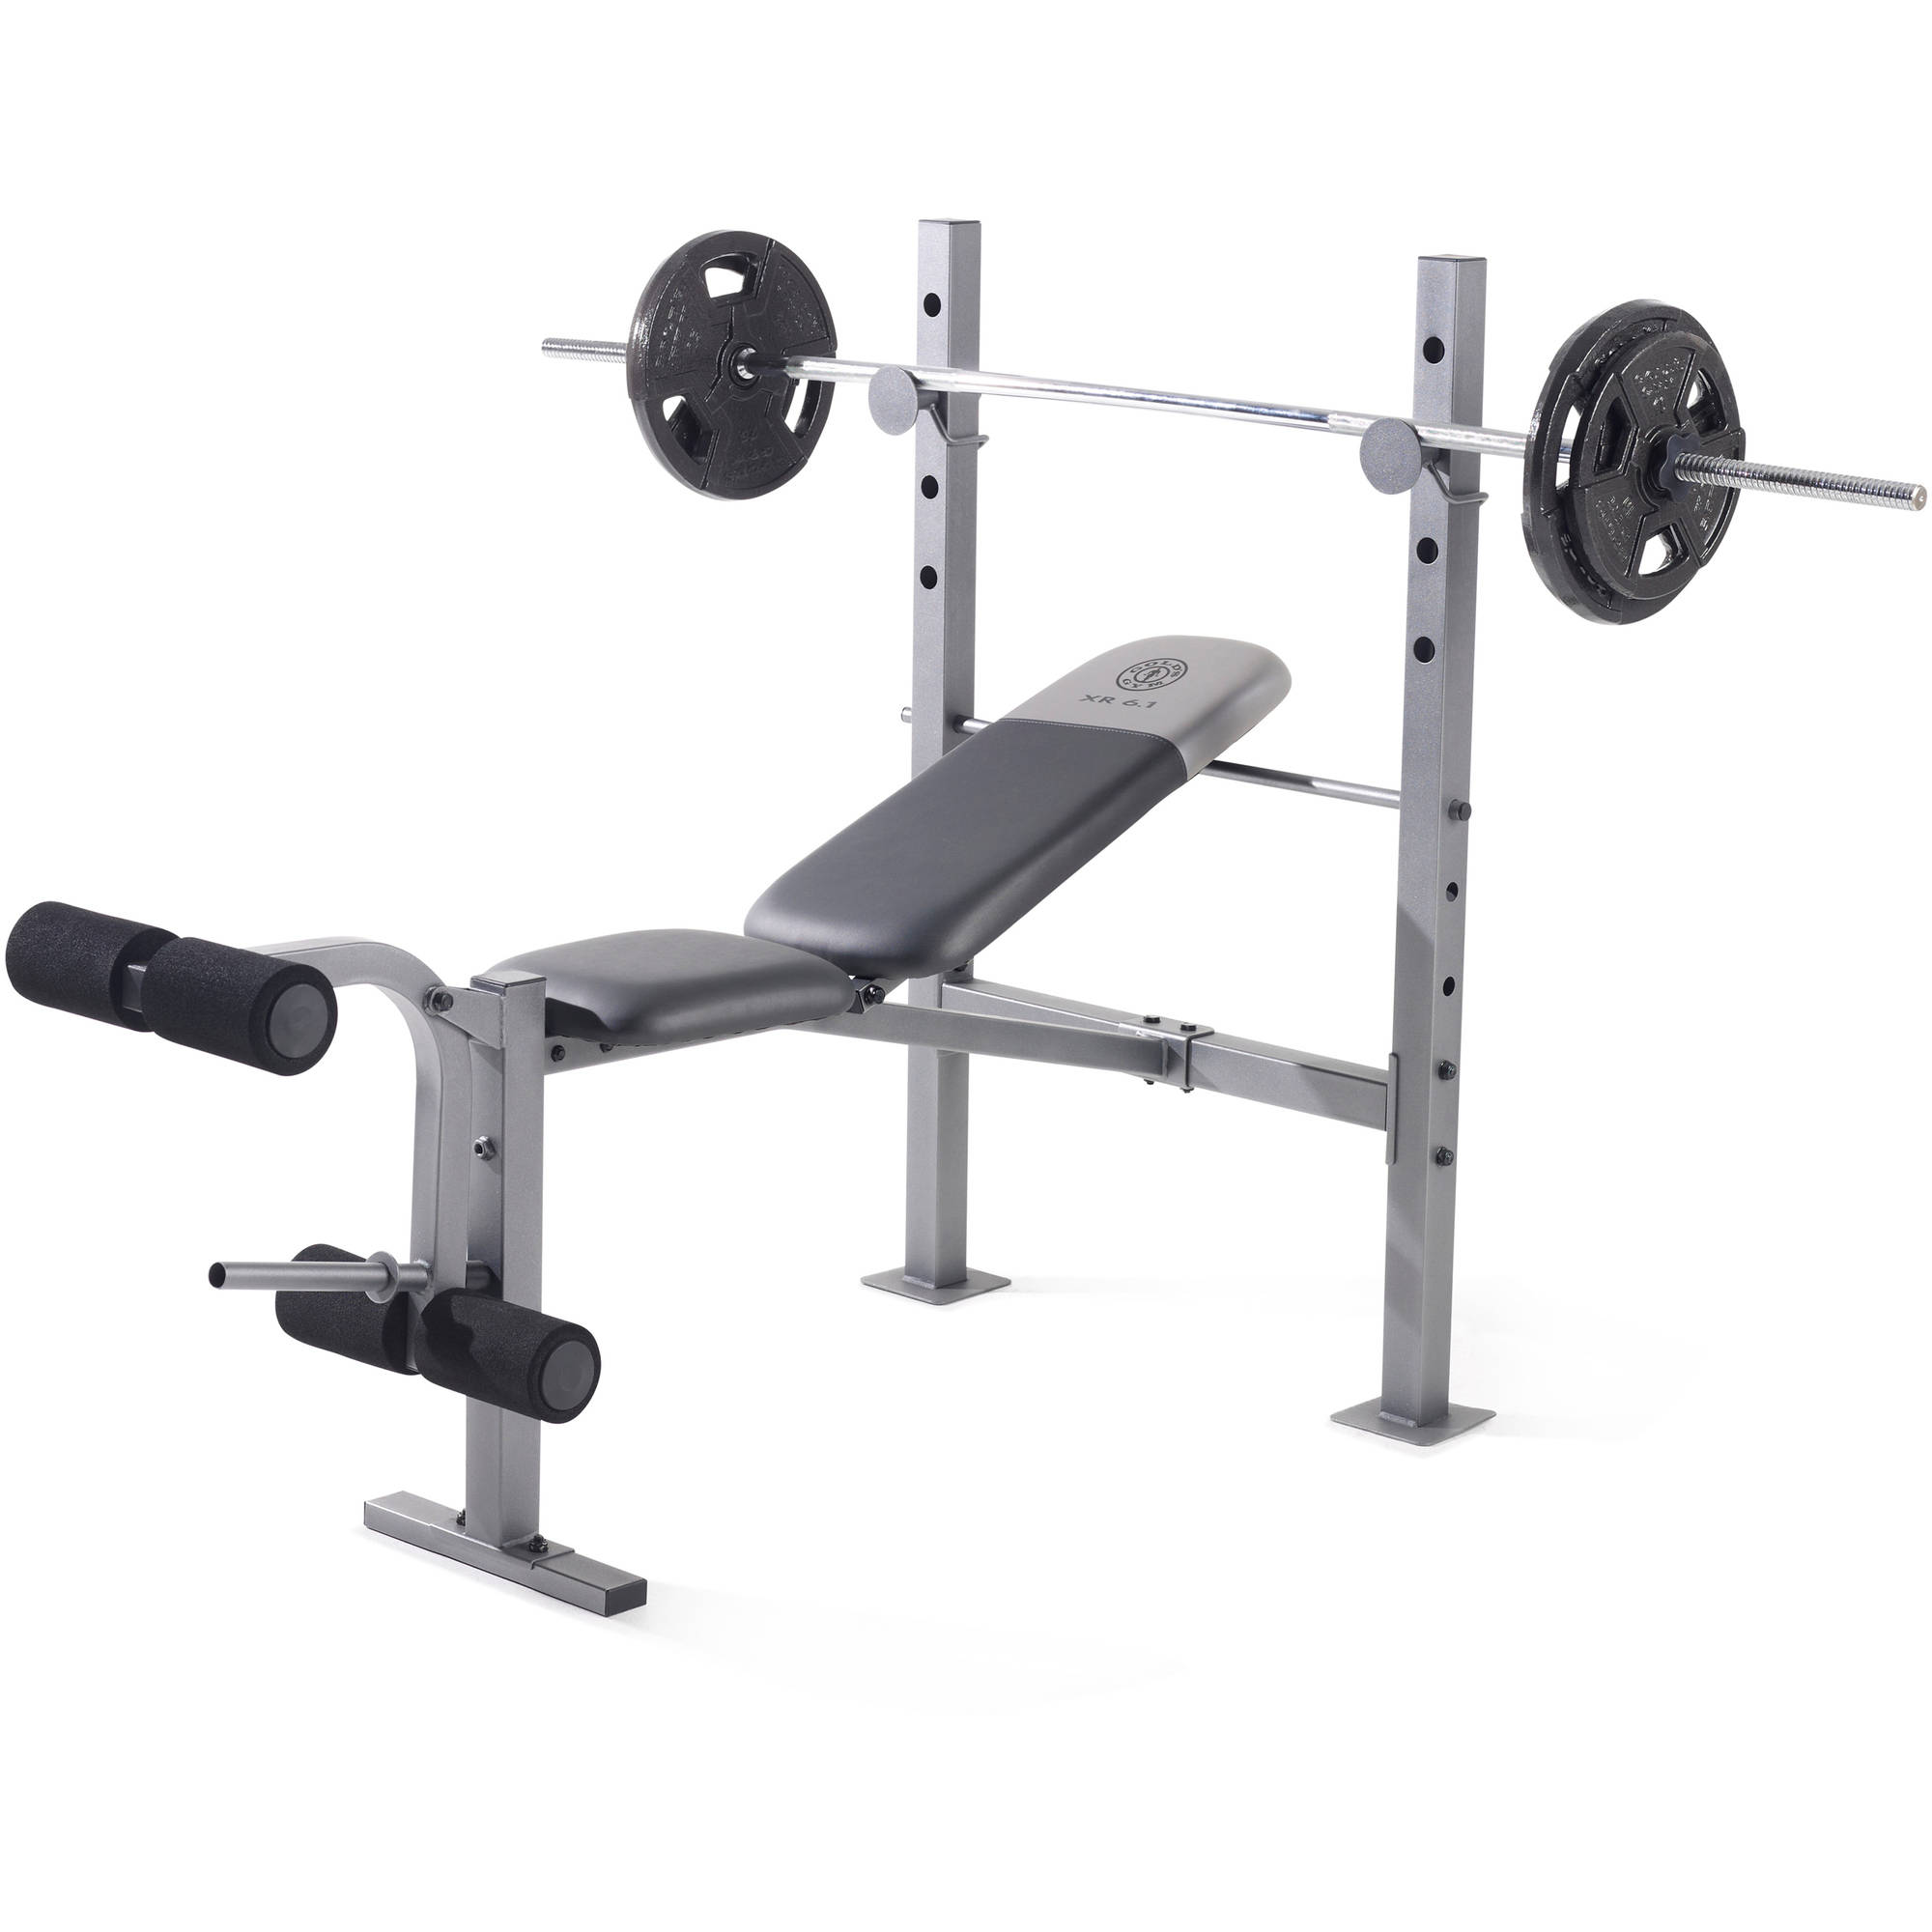 golds gym bench xr 6.1 model no ggbe606a10.2 manual